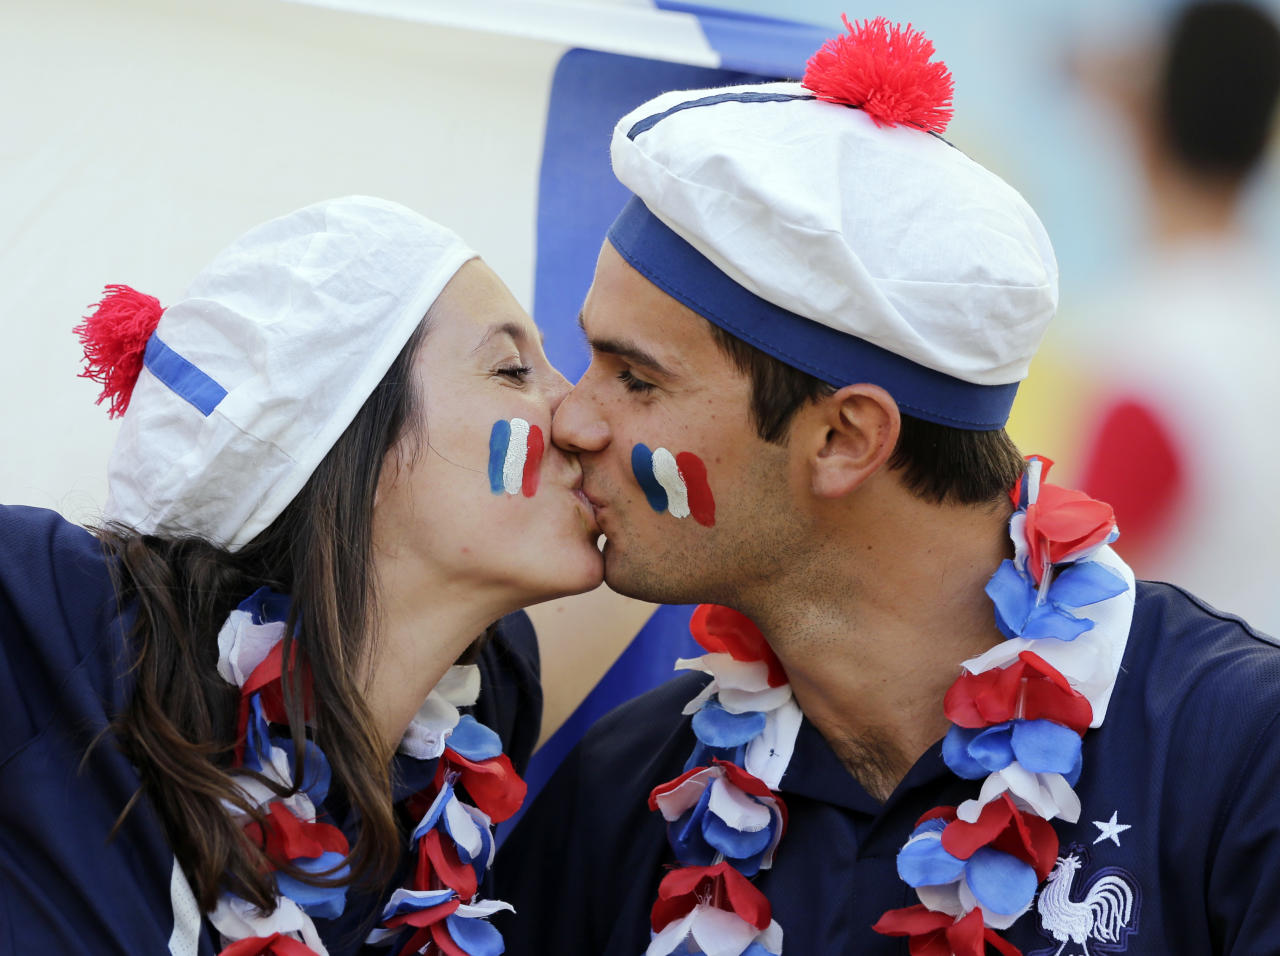 French soccer fans kiss before the World Cup quarterfinal soccer match between Germany and France at the Maracana Stadium in Rio de Janeiro, Brazil, Friday, July 4, 2014. (AP Photo/Matthias Schrader)